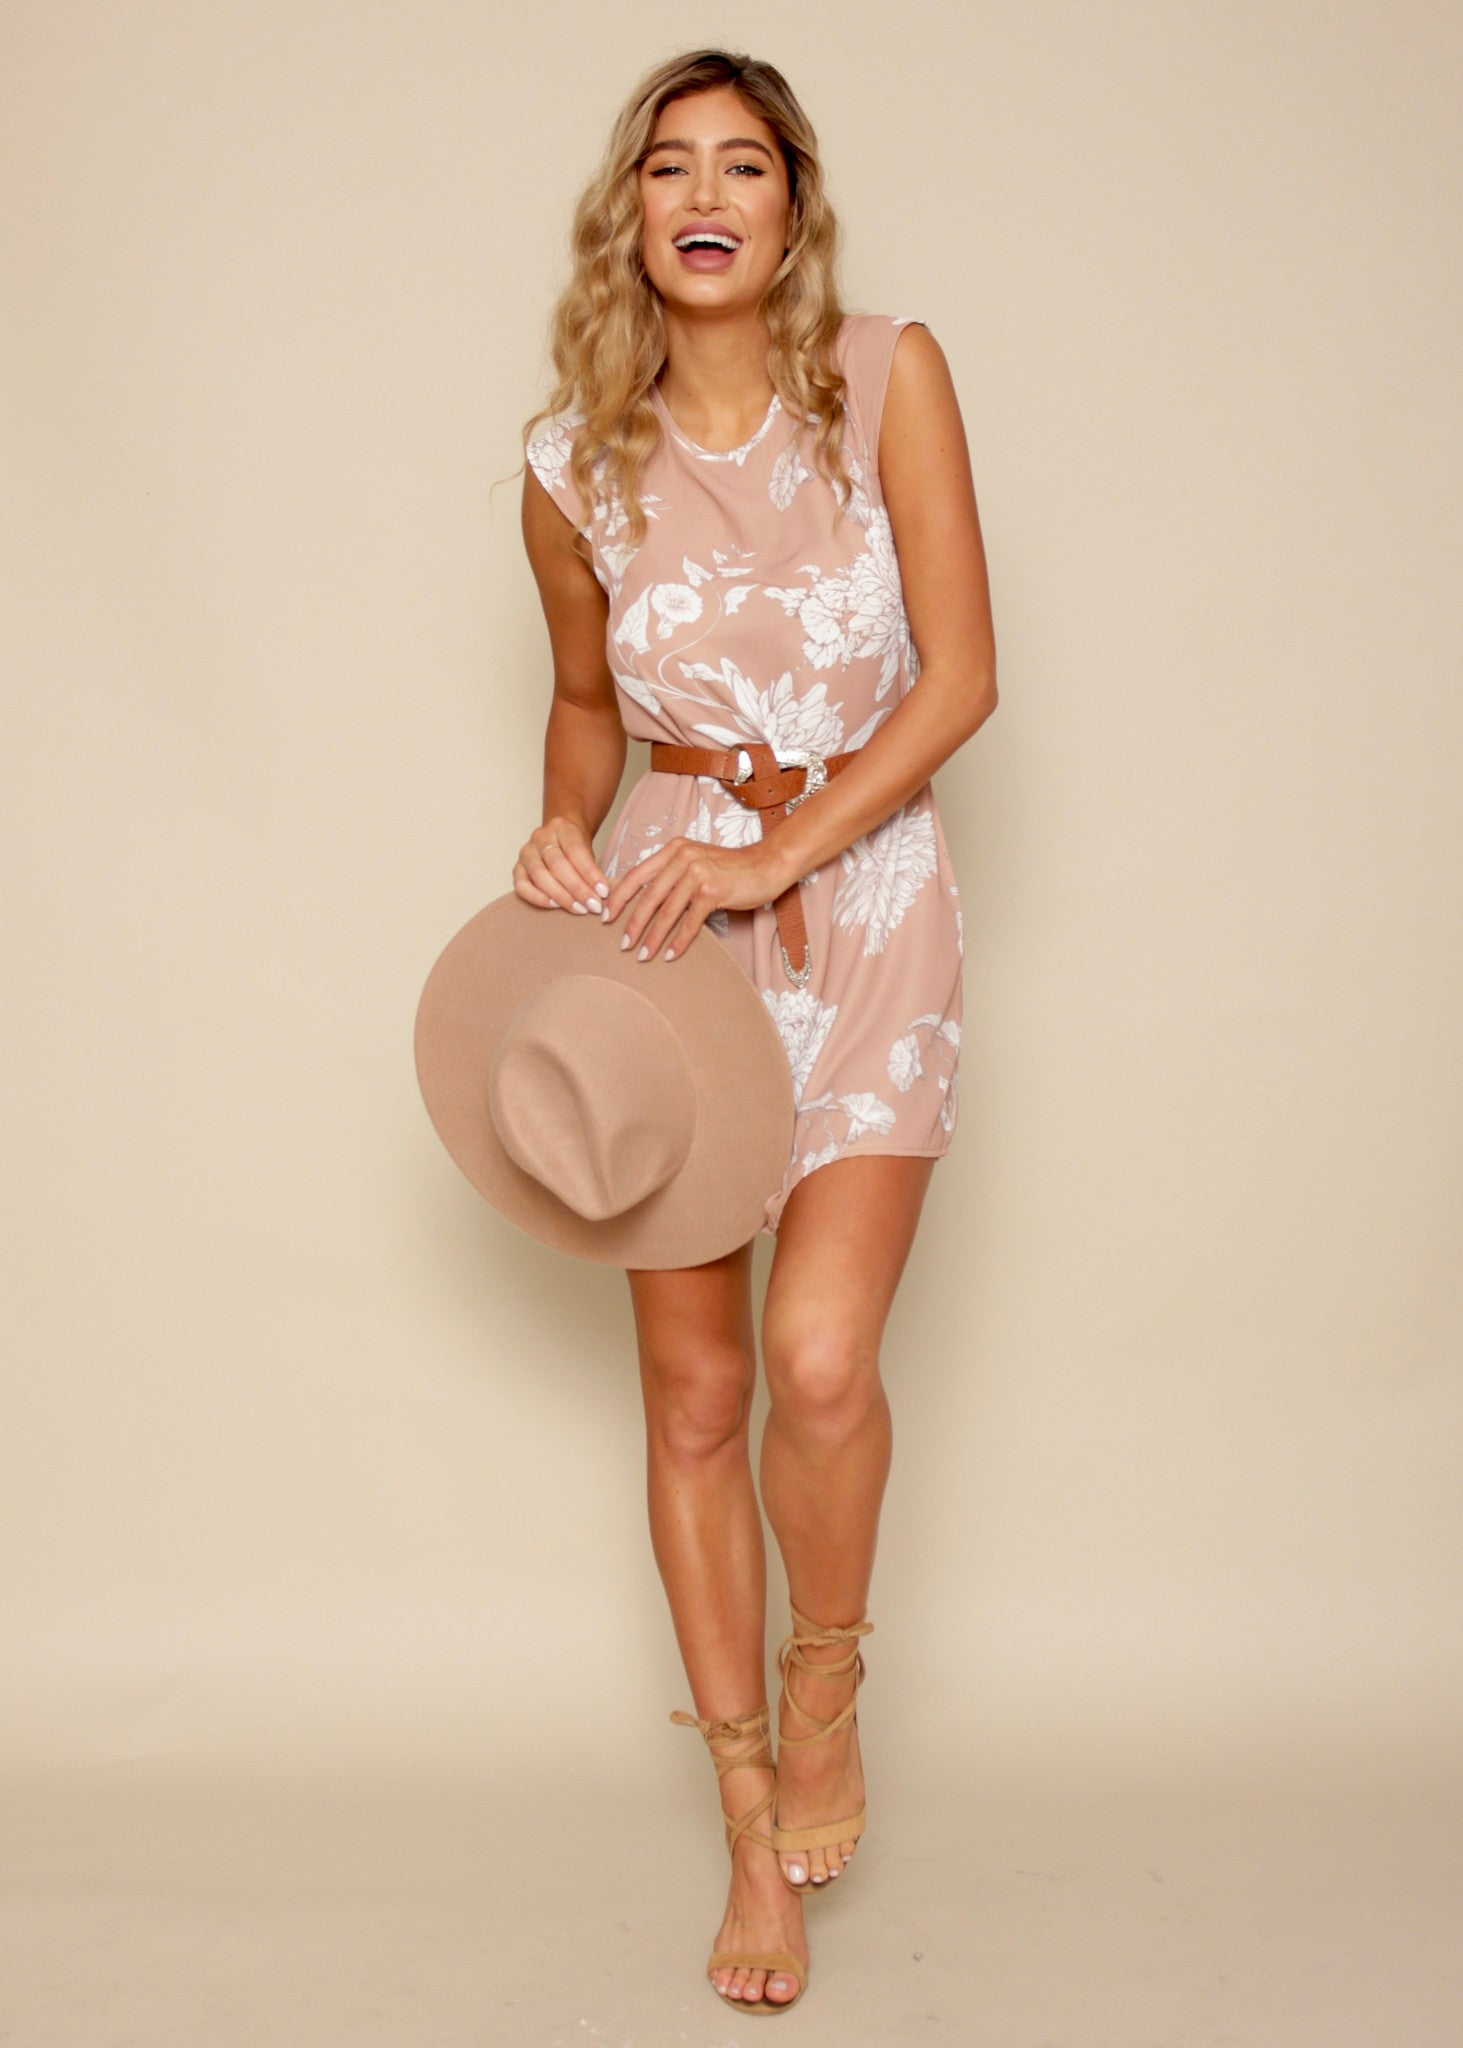 All This Beauty Dress - Sand Floral